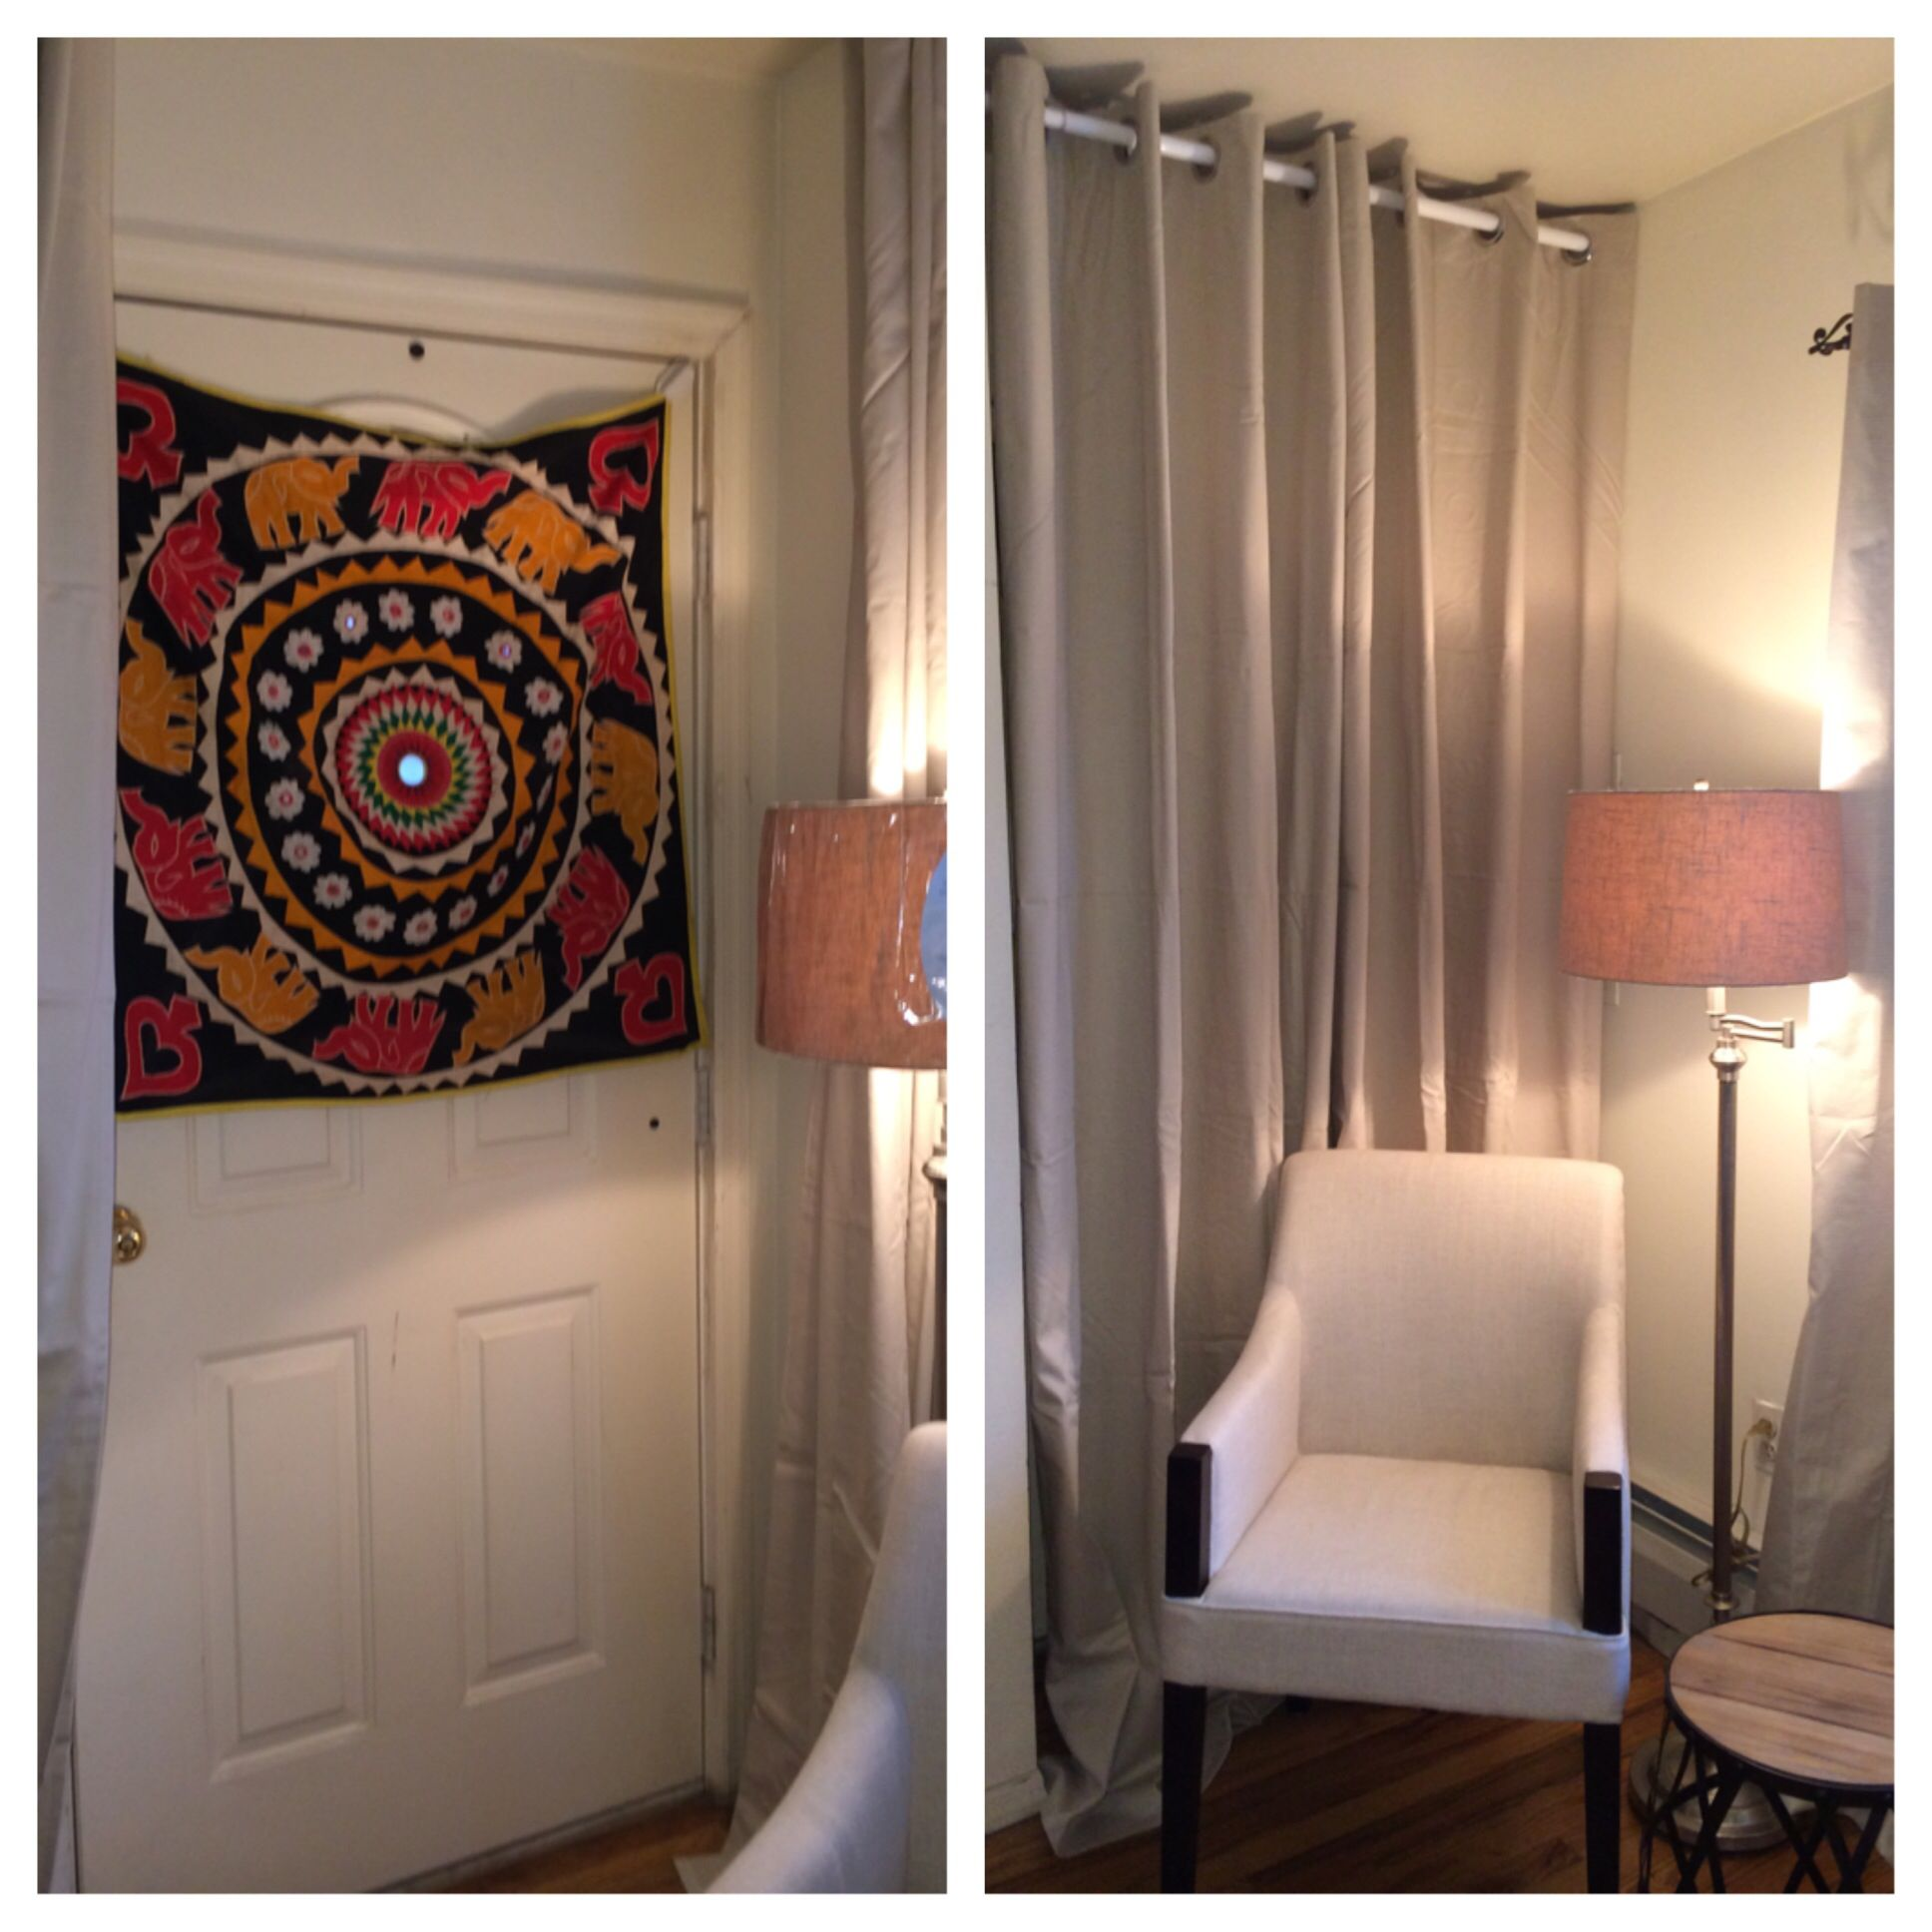 Hide An Unwanted Door With A Tension Rod And Curtains That Match The Wall.